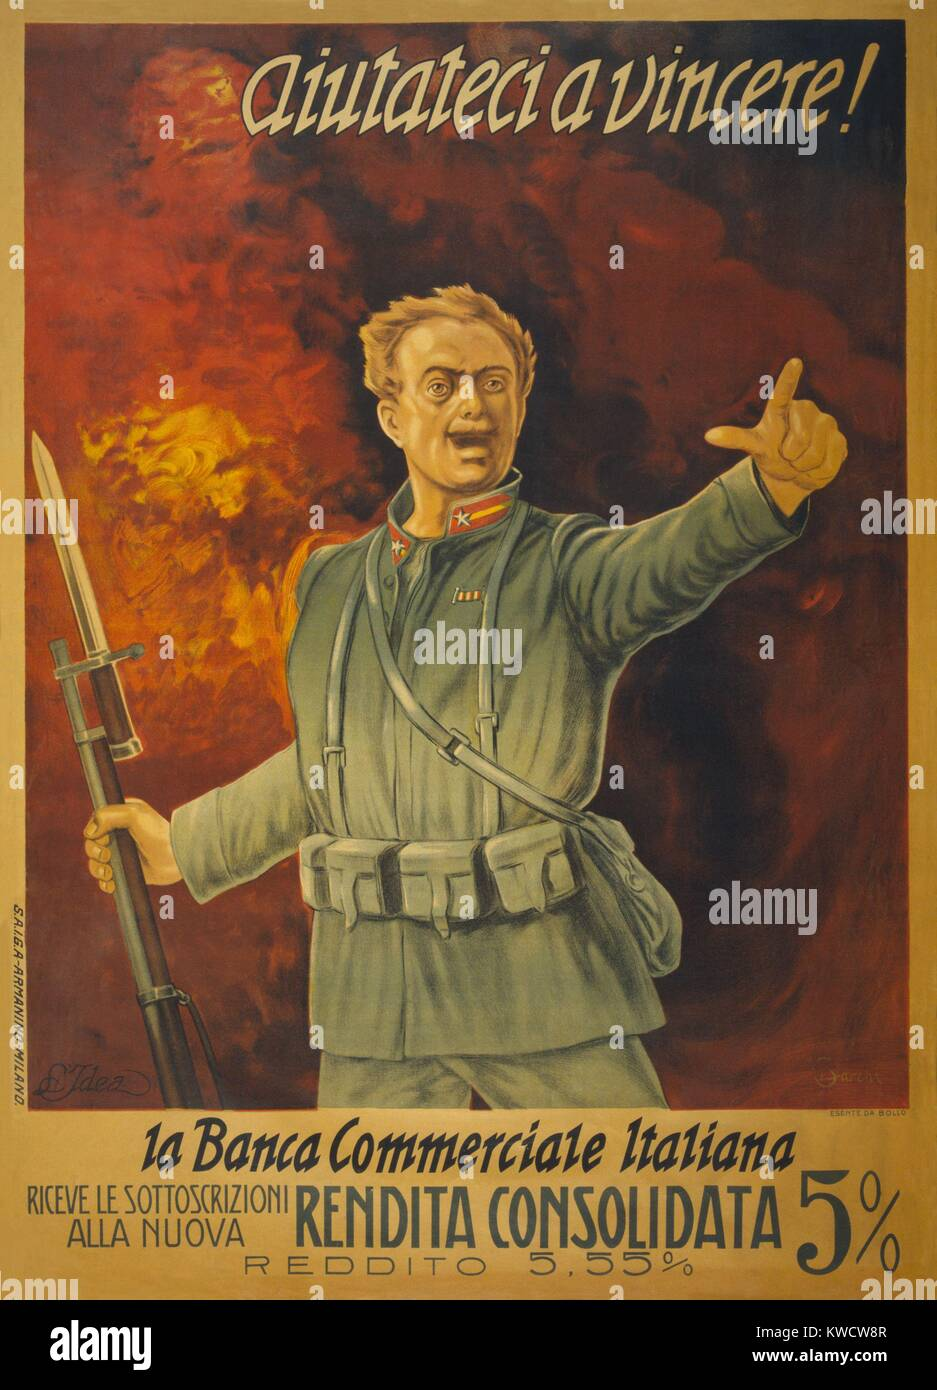 Italian World War 1 bond poster. Standing in front of a wall of fire, and Italian soldier with a bayoneted rifle - Stock Image